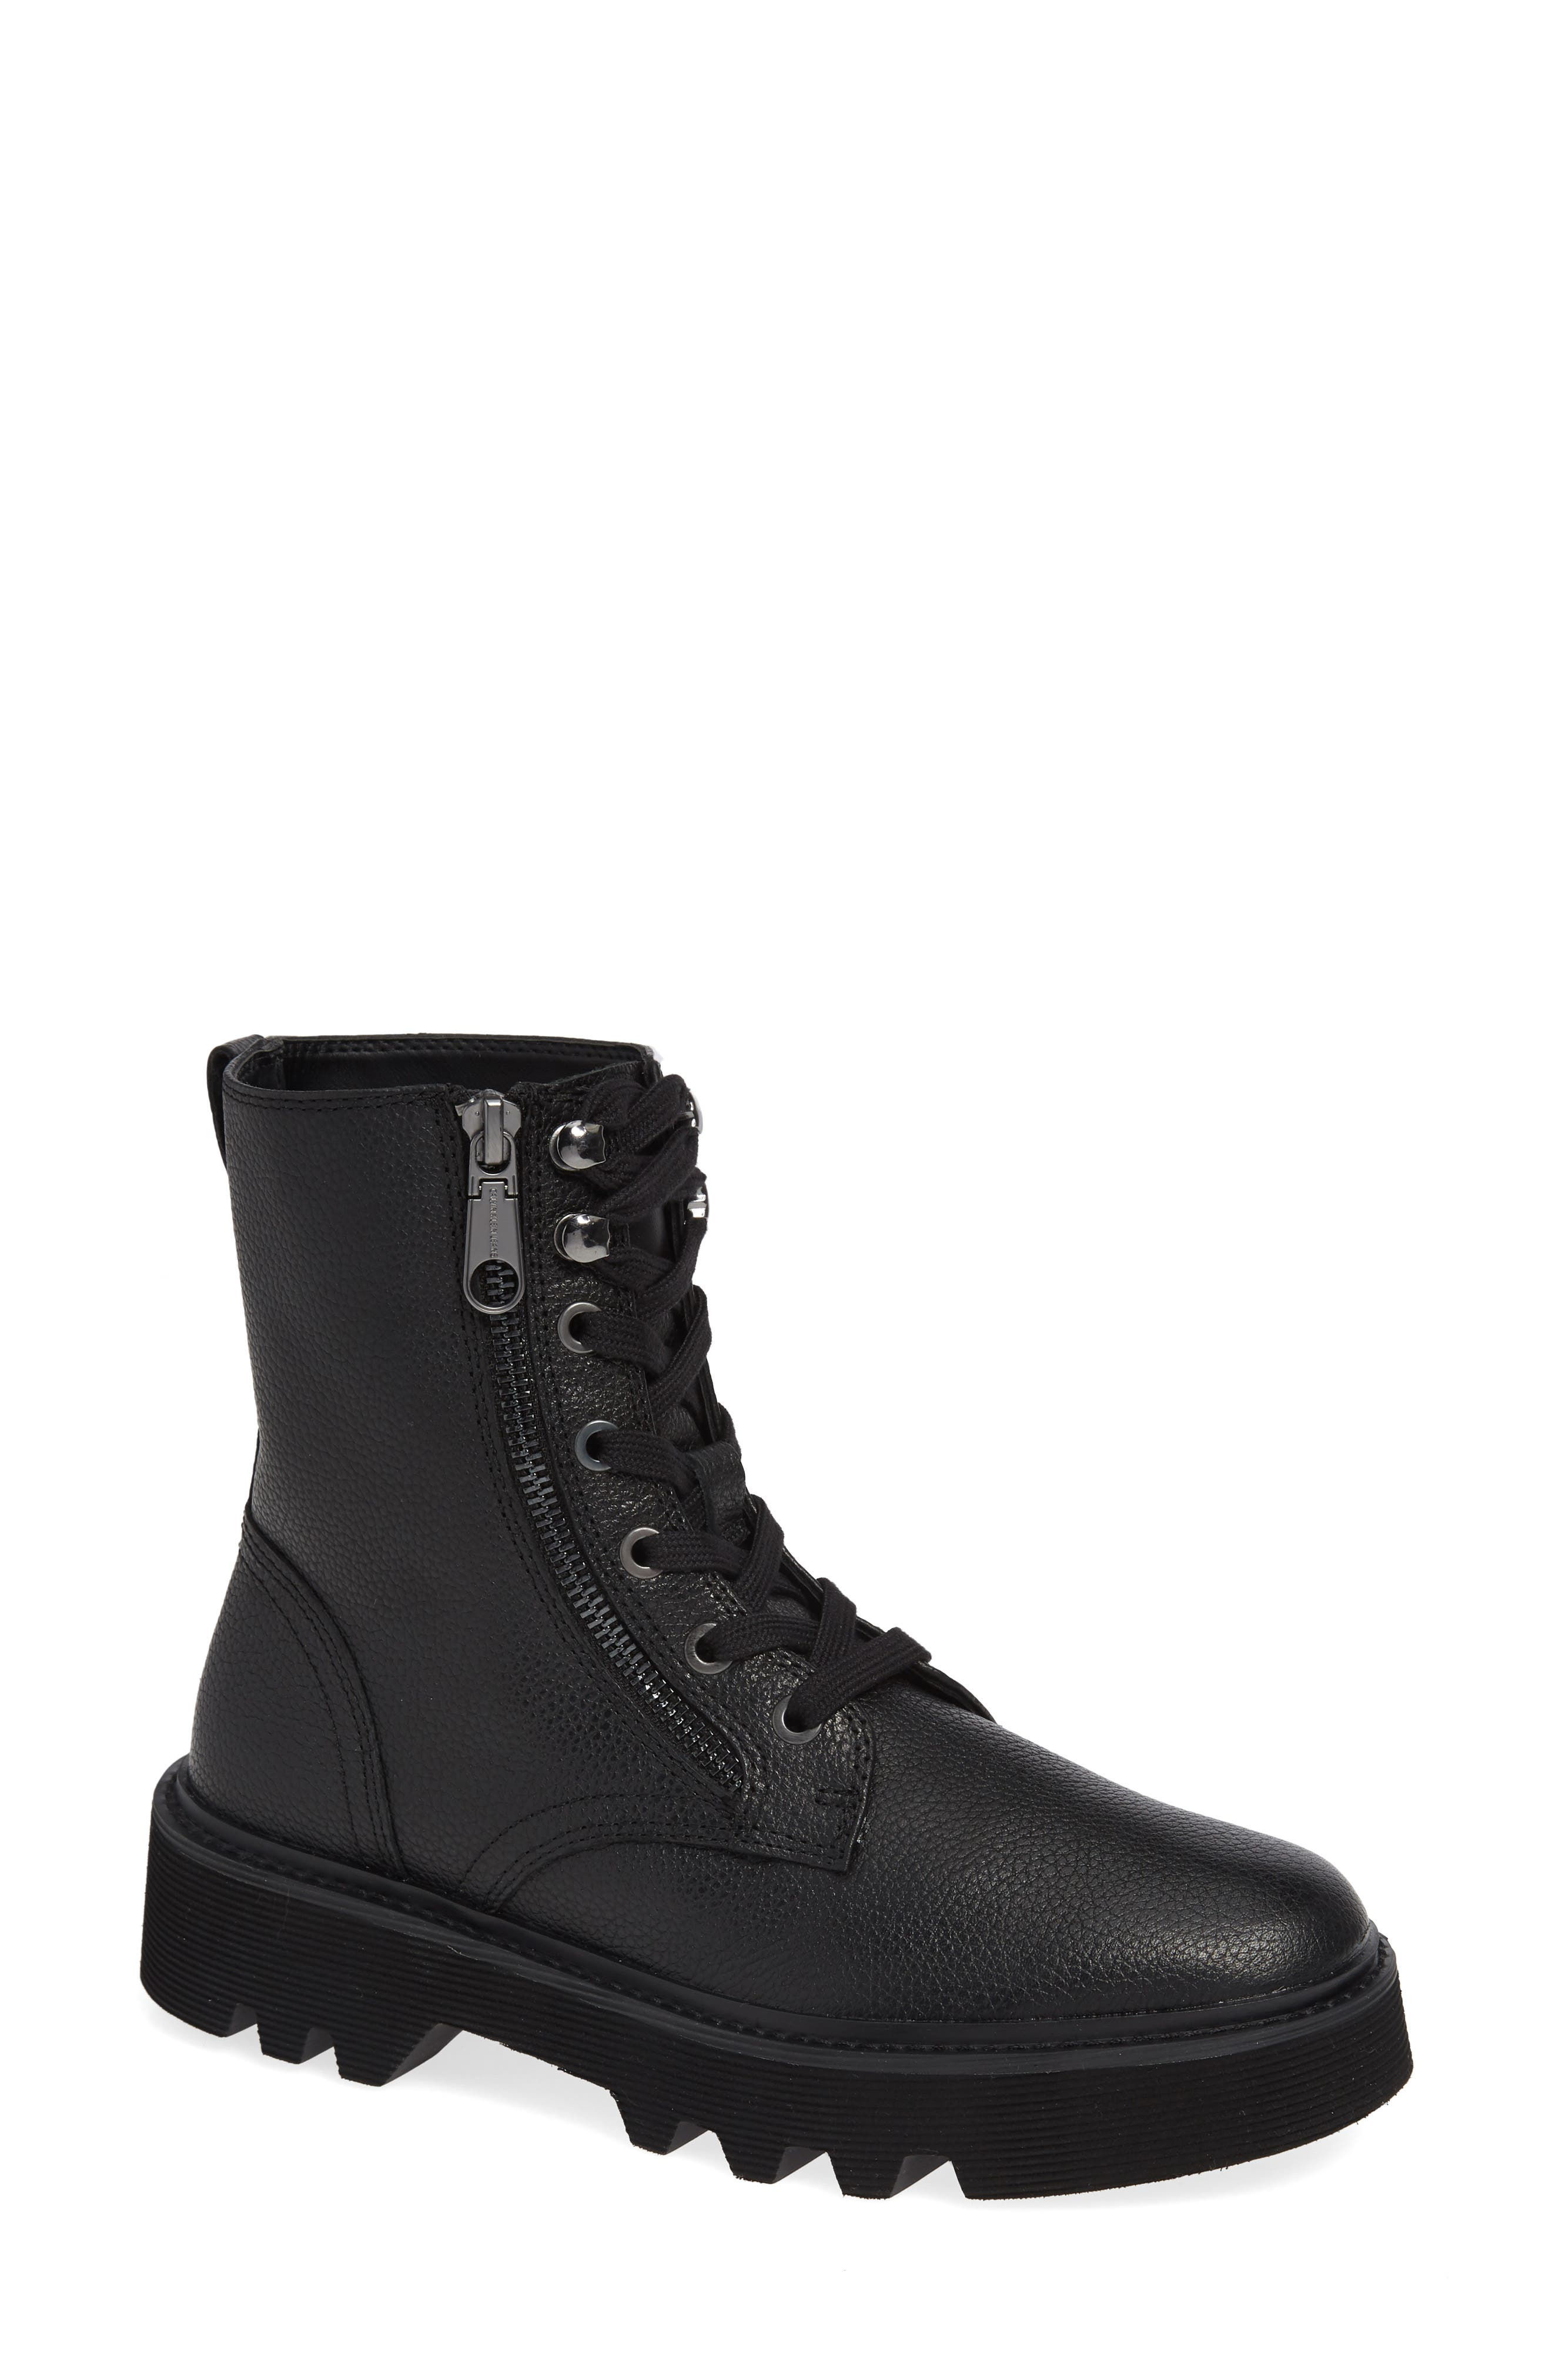 Diahne Combat Boot,                             Main thumbnail 1, color,                             BLACK LEATHER